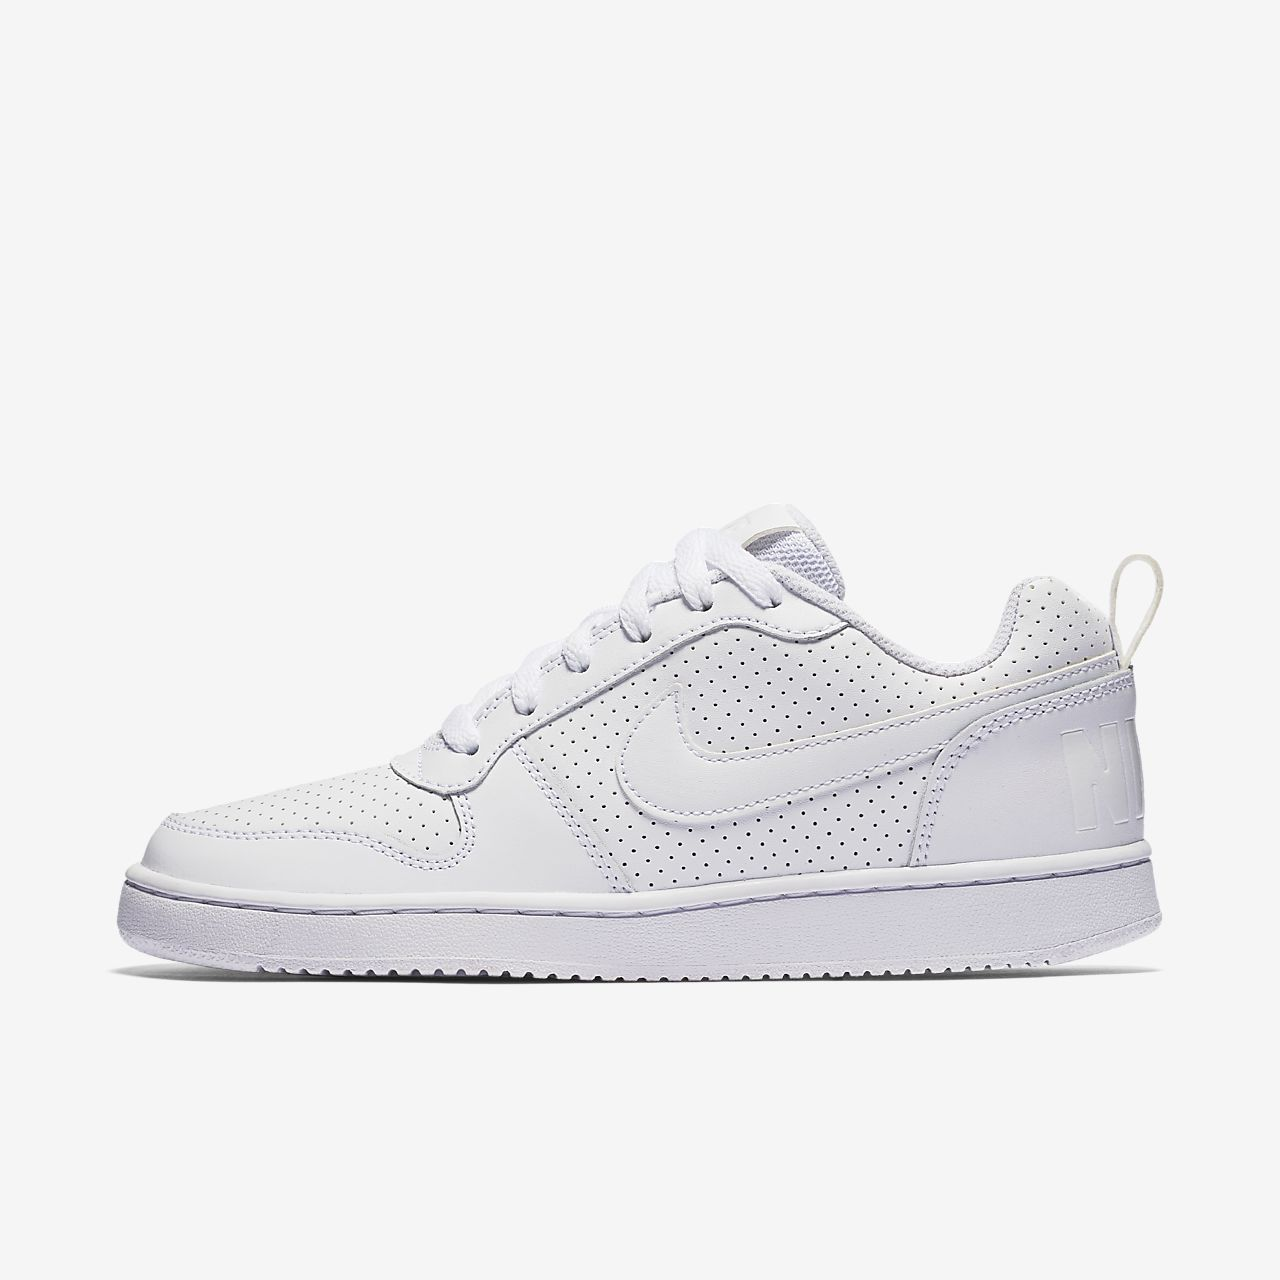 353cfa6716f Calzado para mujer Nike Court Borough Low. Nike.com MX